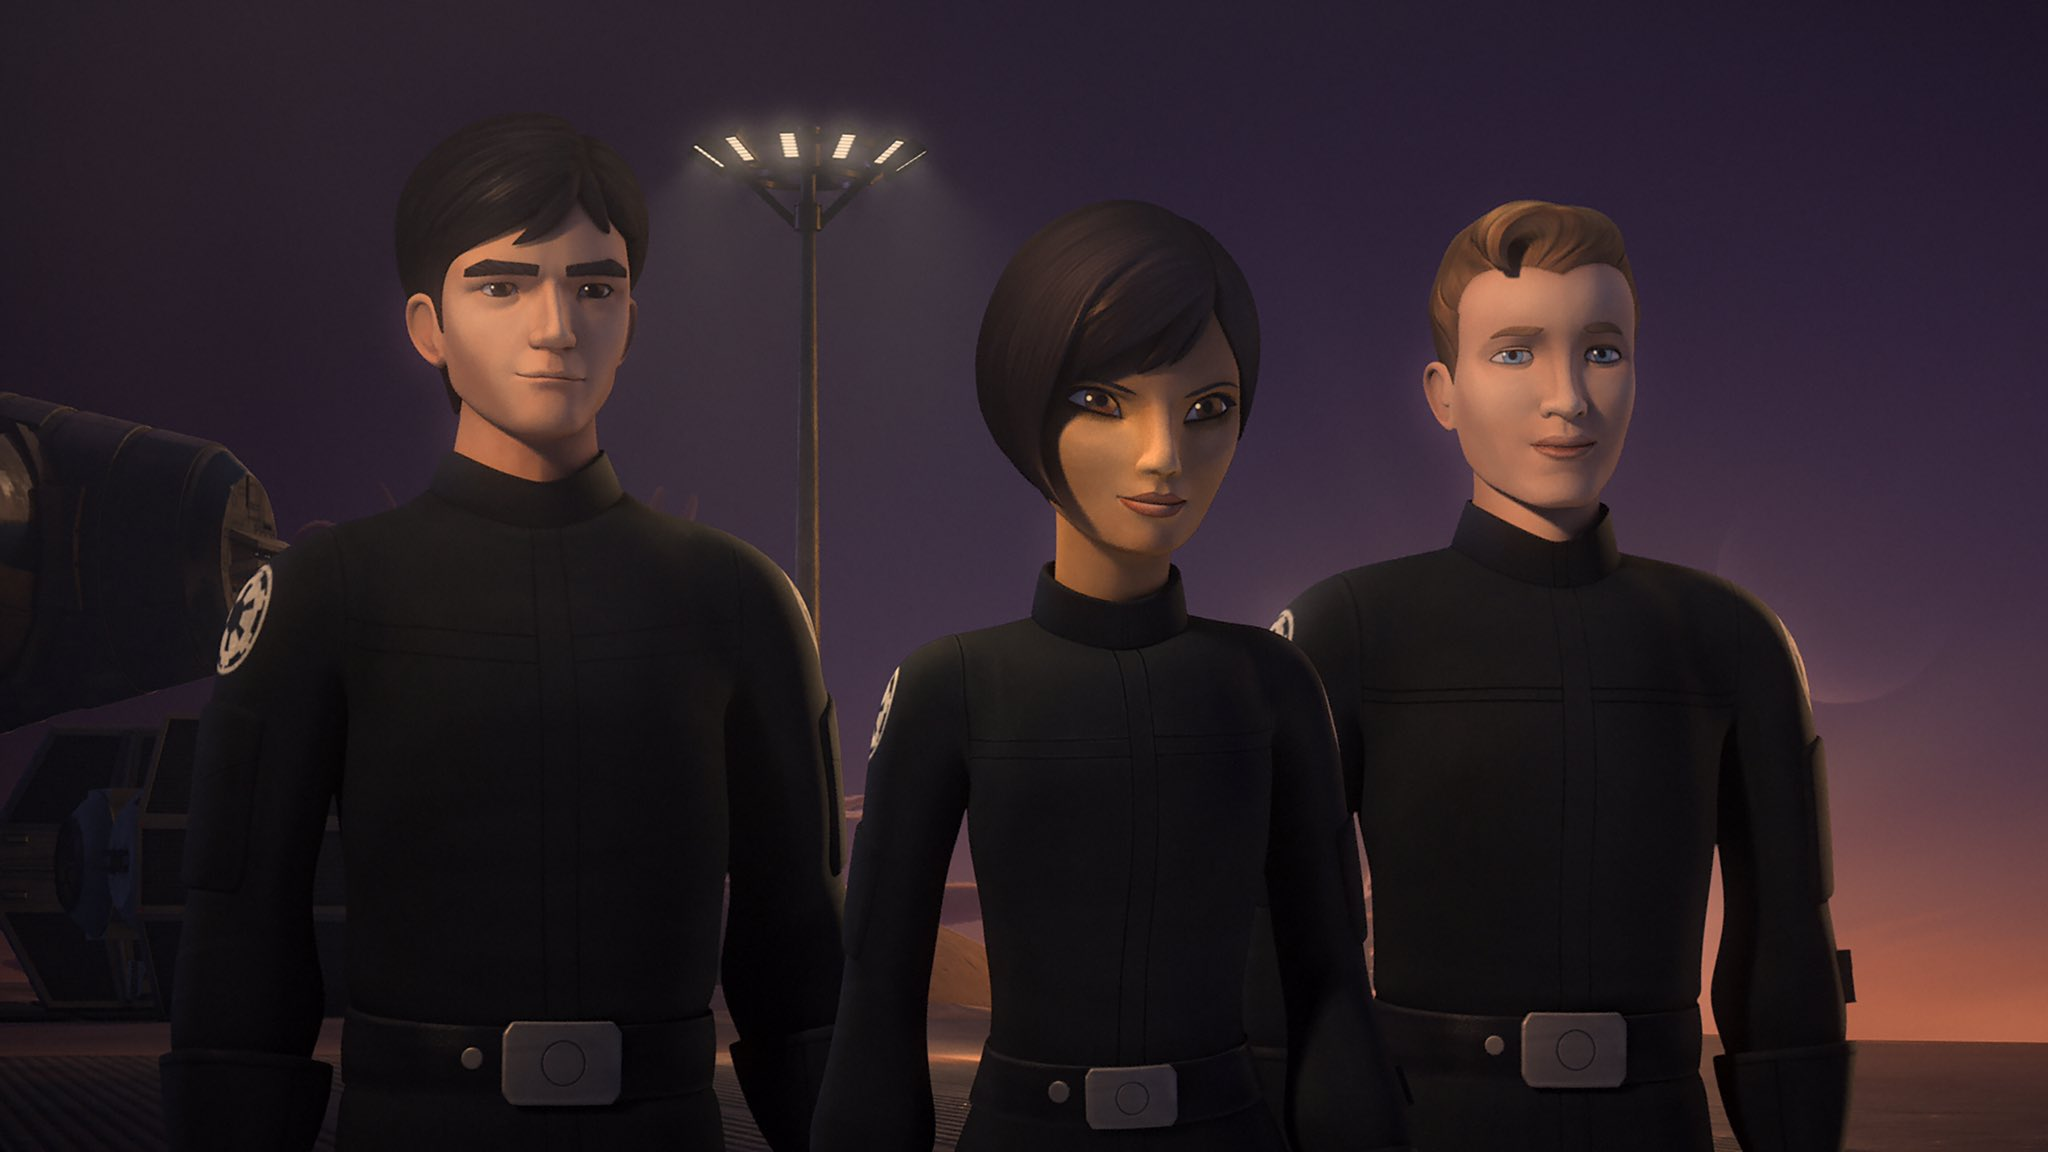 Today is the day I join the universe! Check out #StarWarsRebels on DisneyXD tonight to see how Wedge got his start. https://t.co/ugMnadeCK2